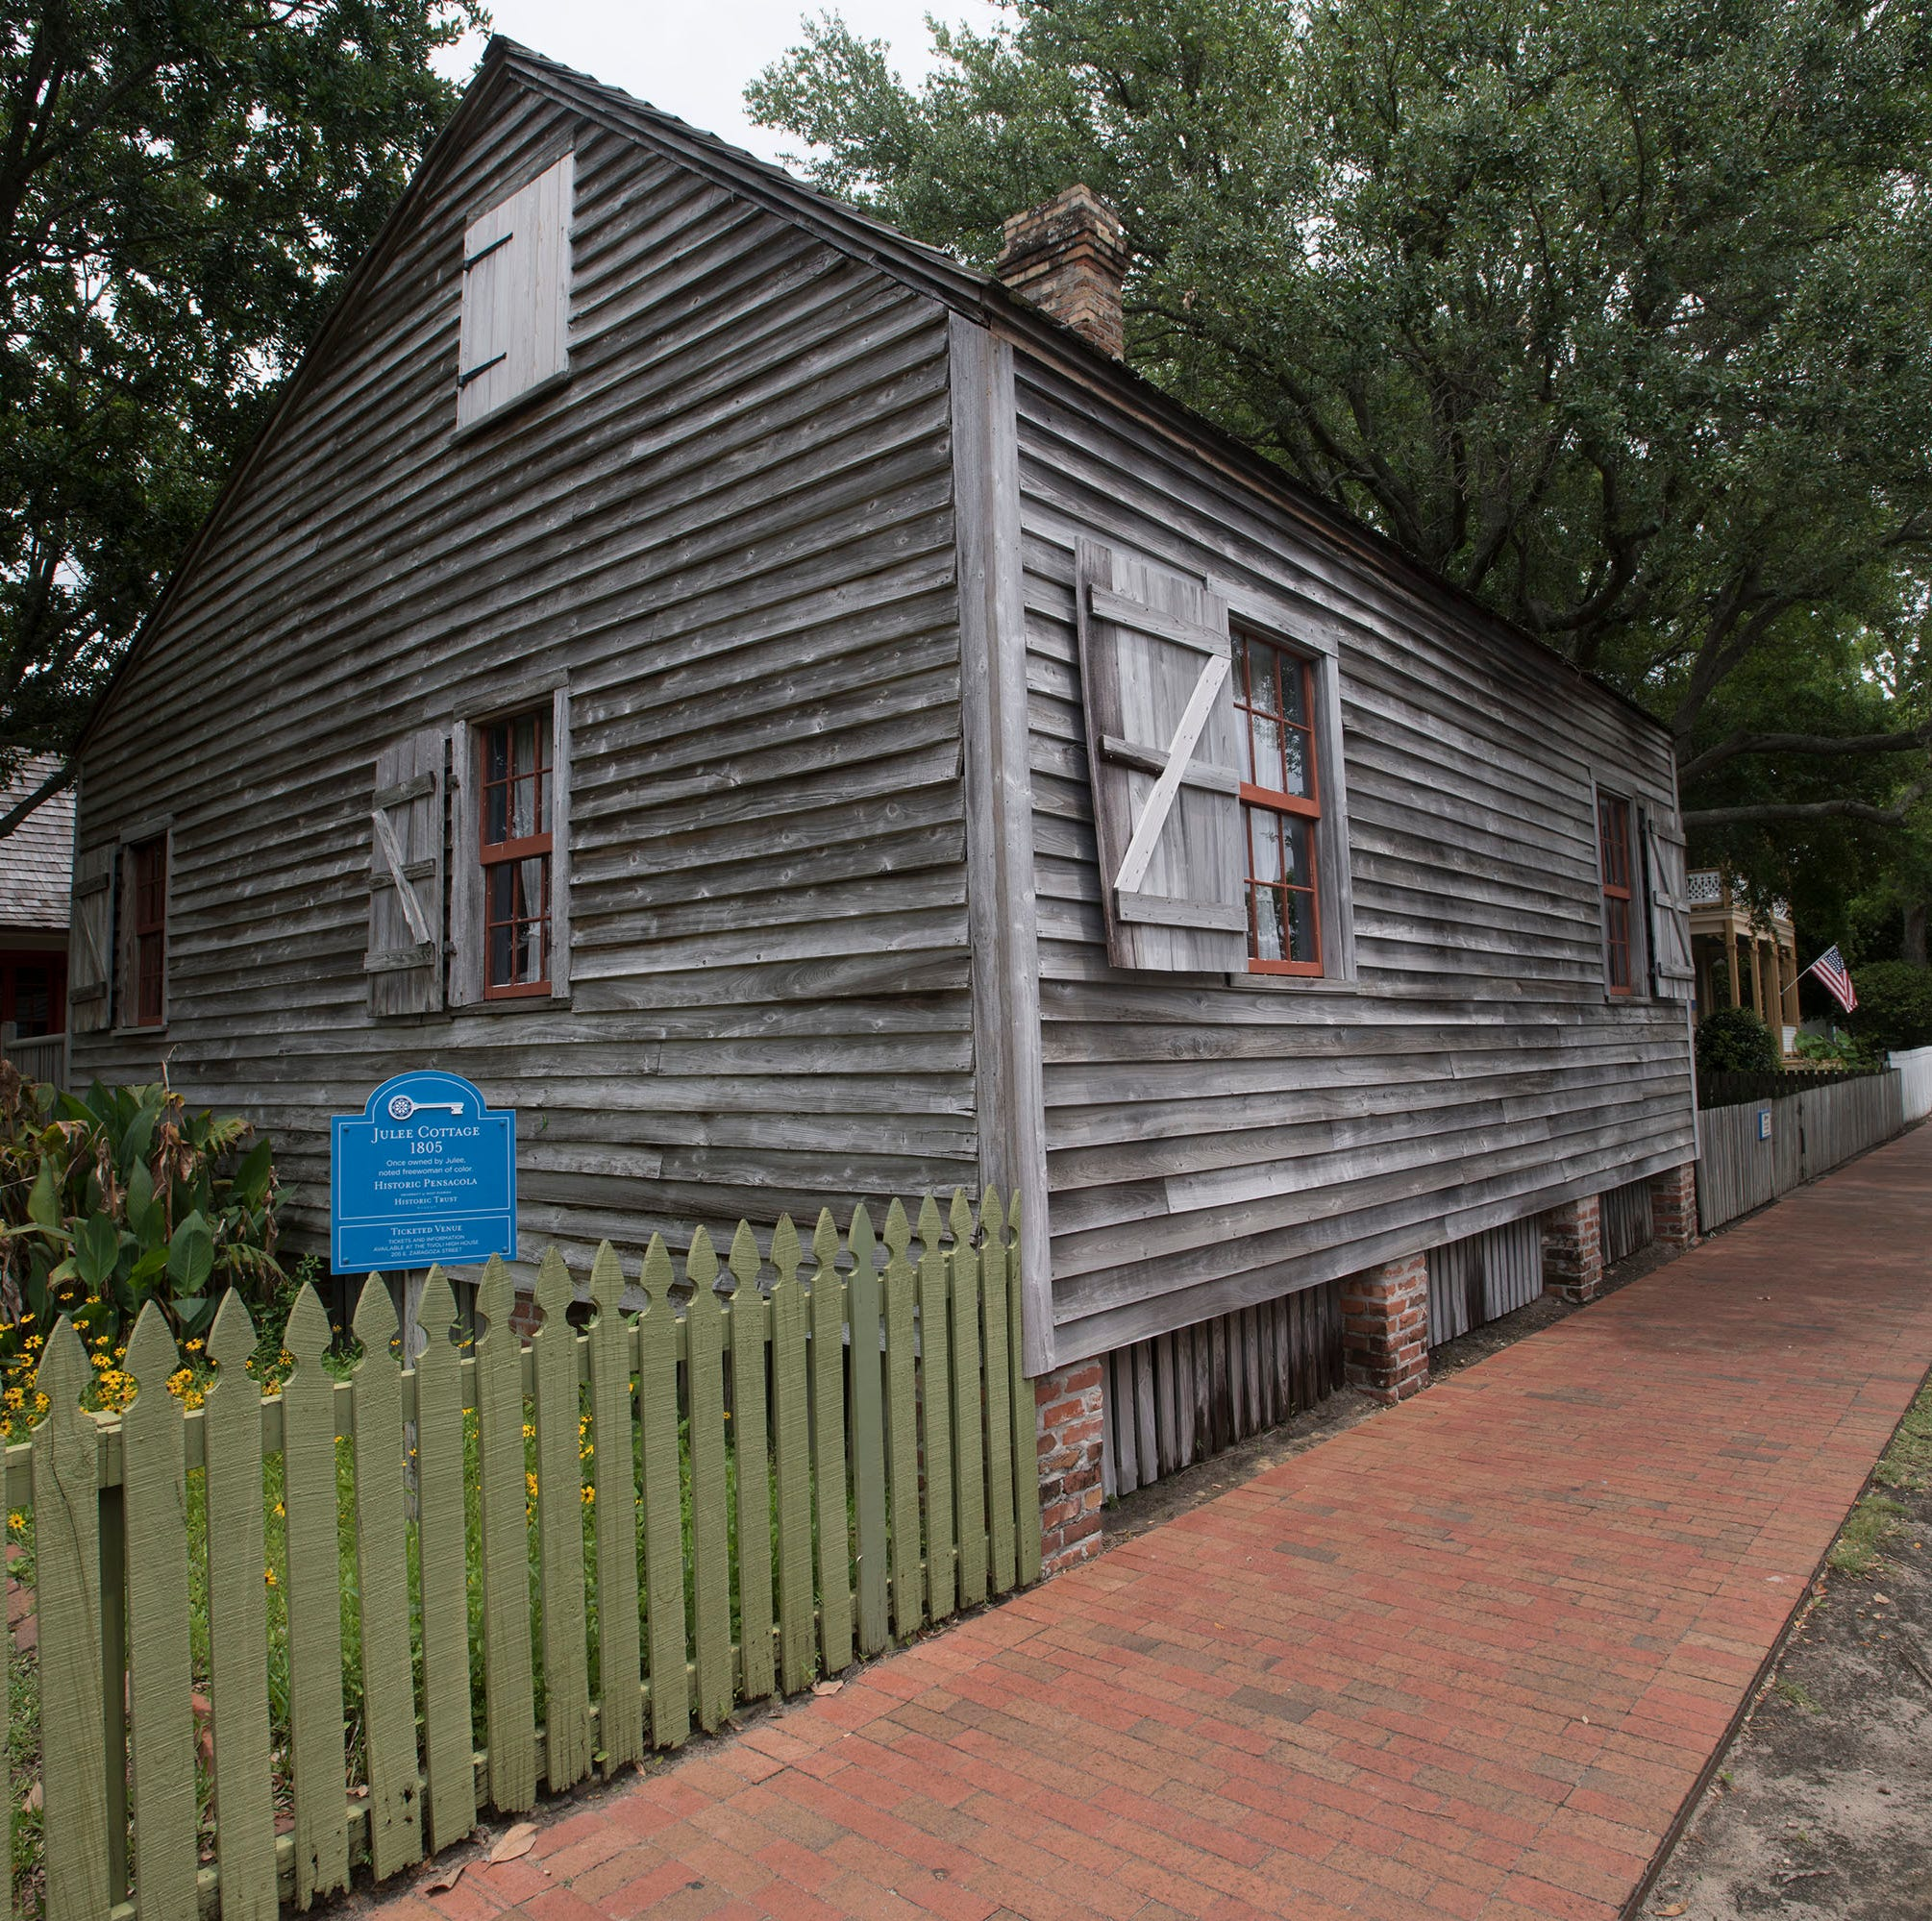 Julee Cottage offers special glimpse into Pensacola history | John Appleyard